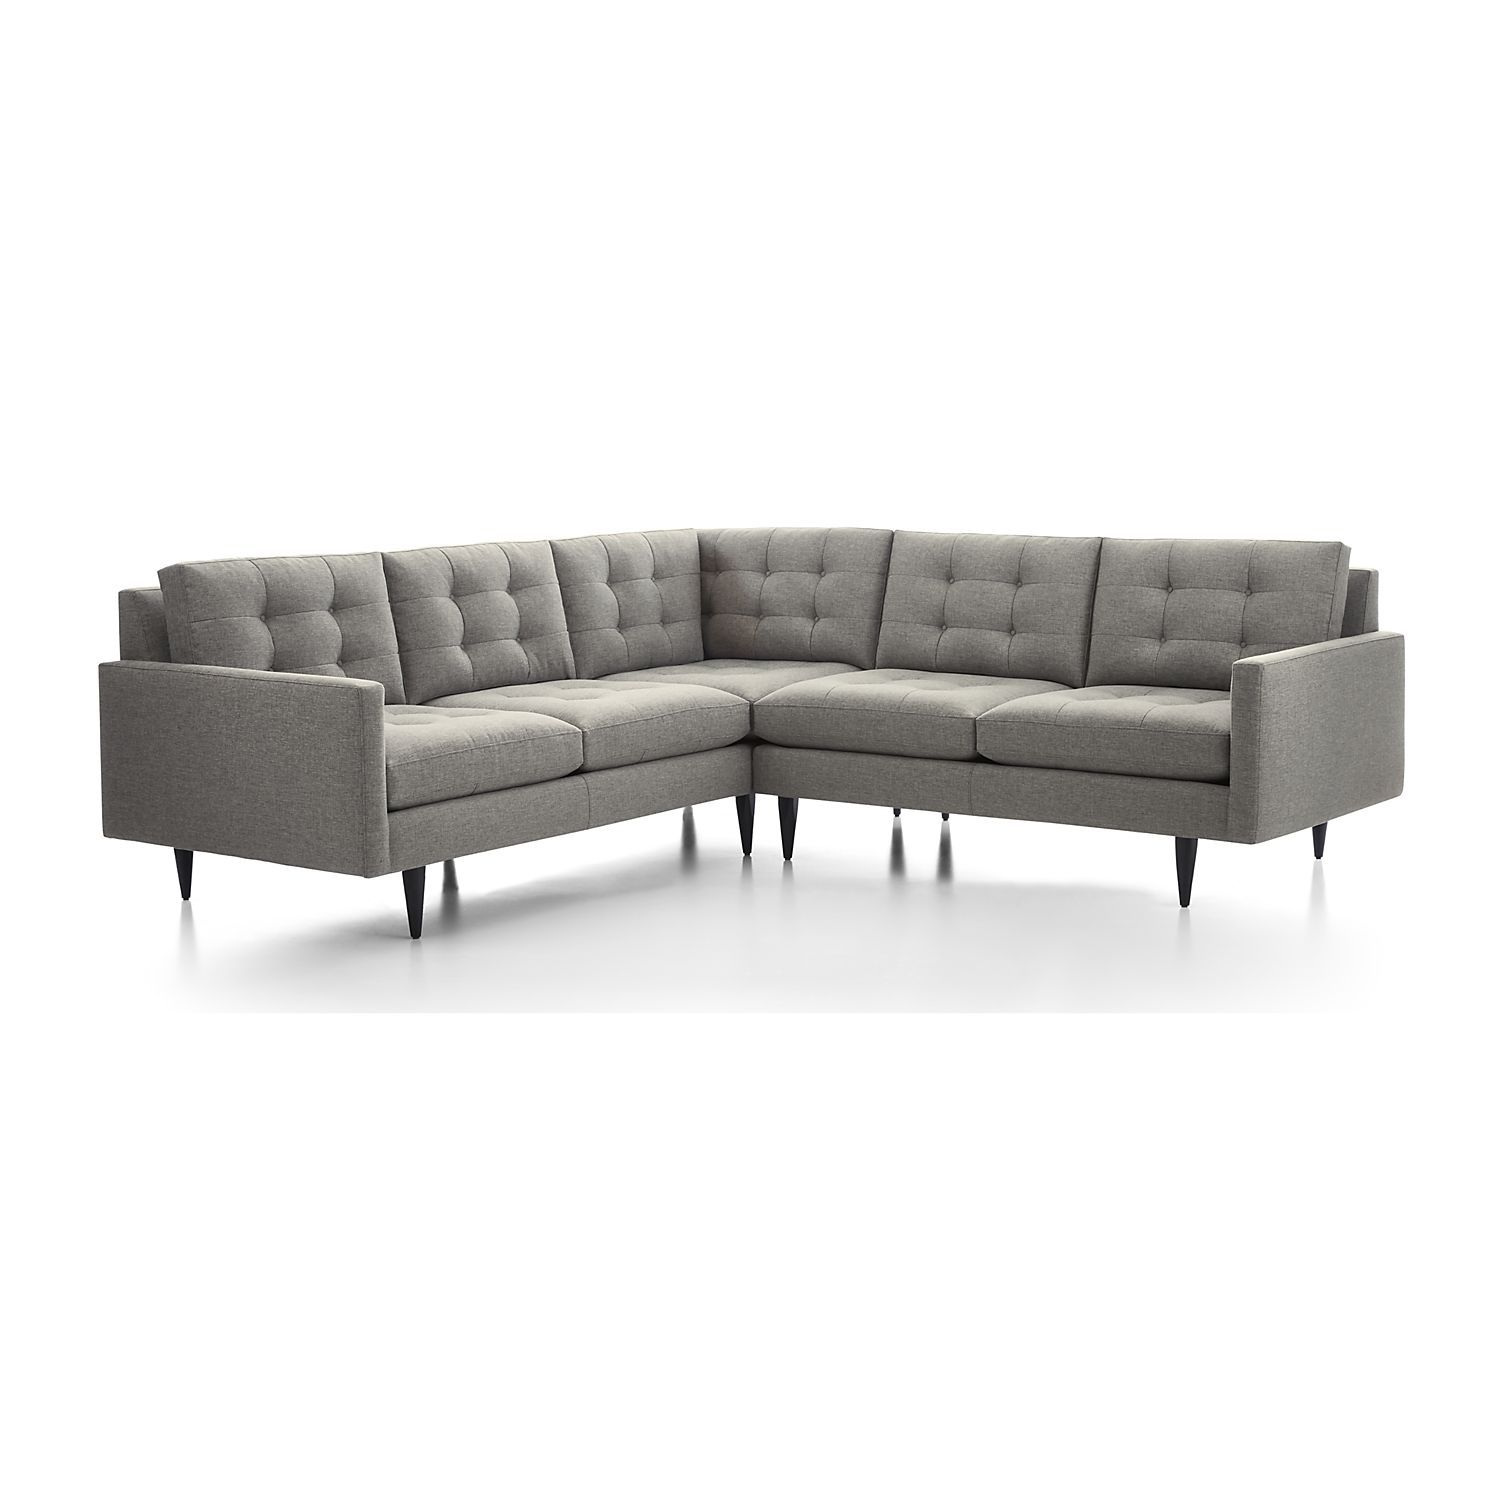 Shop petrie 2 piece corner sectional sofa now a crate and barrel classic its pure 1960s aesthetic is scaled deep so you can sit firm and upright